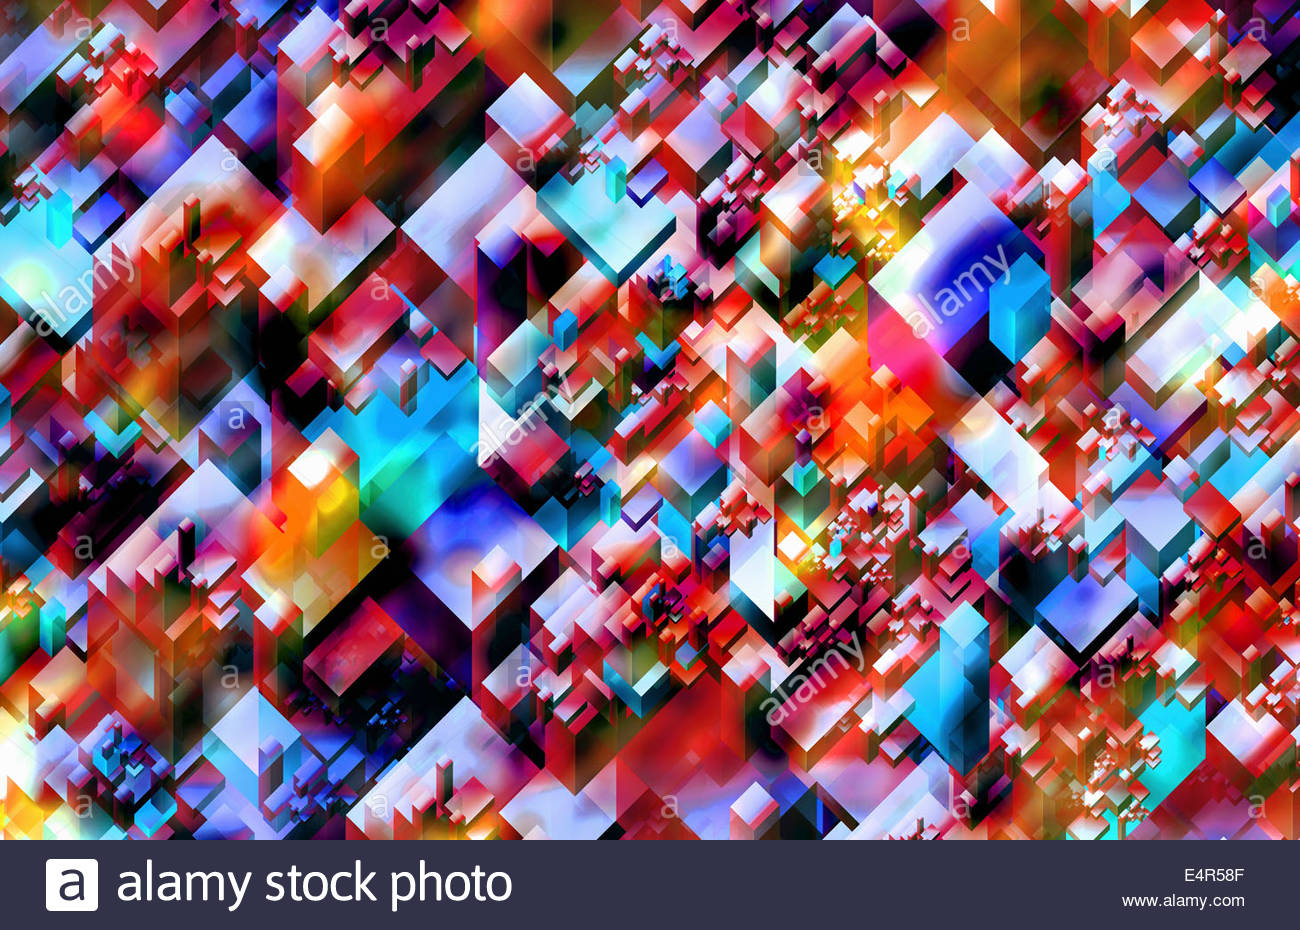 Three dimensional abstract backgrounds block pattern - Stock Image